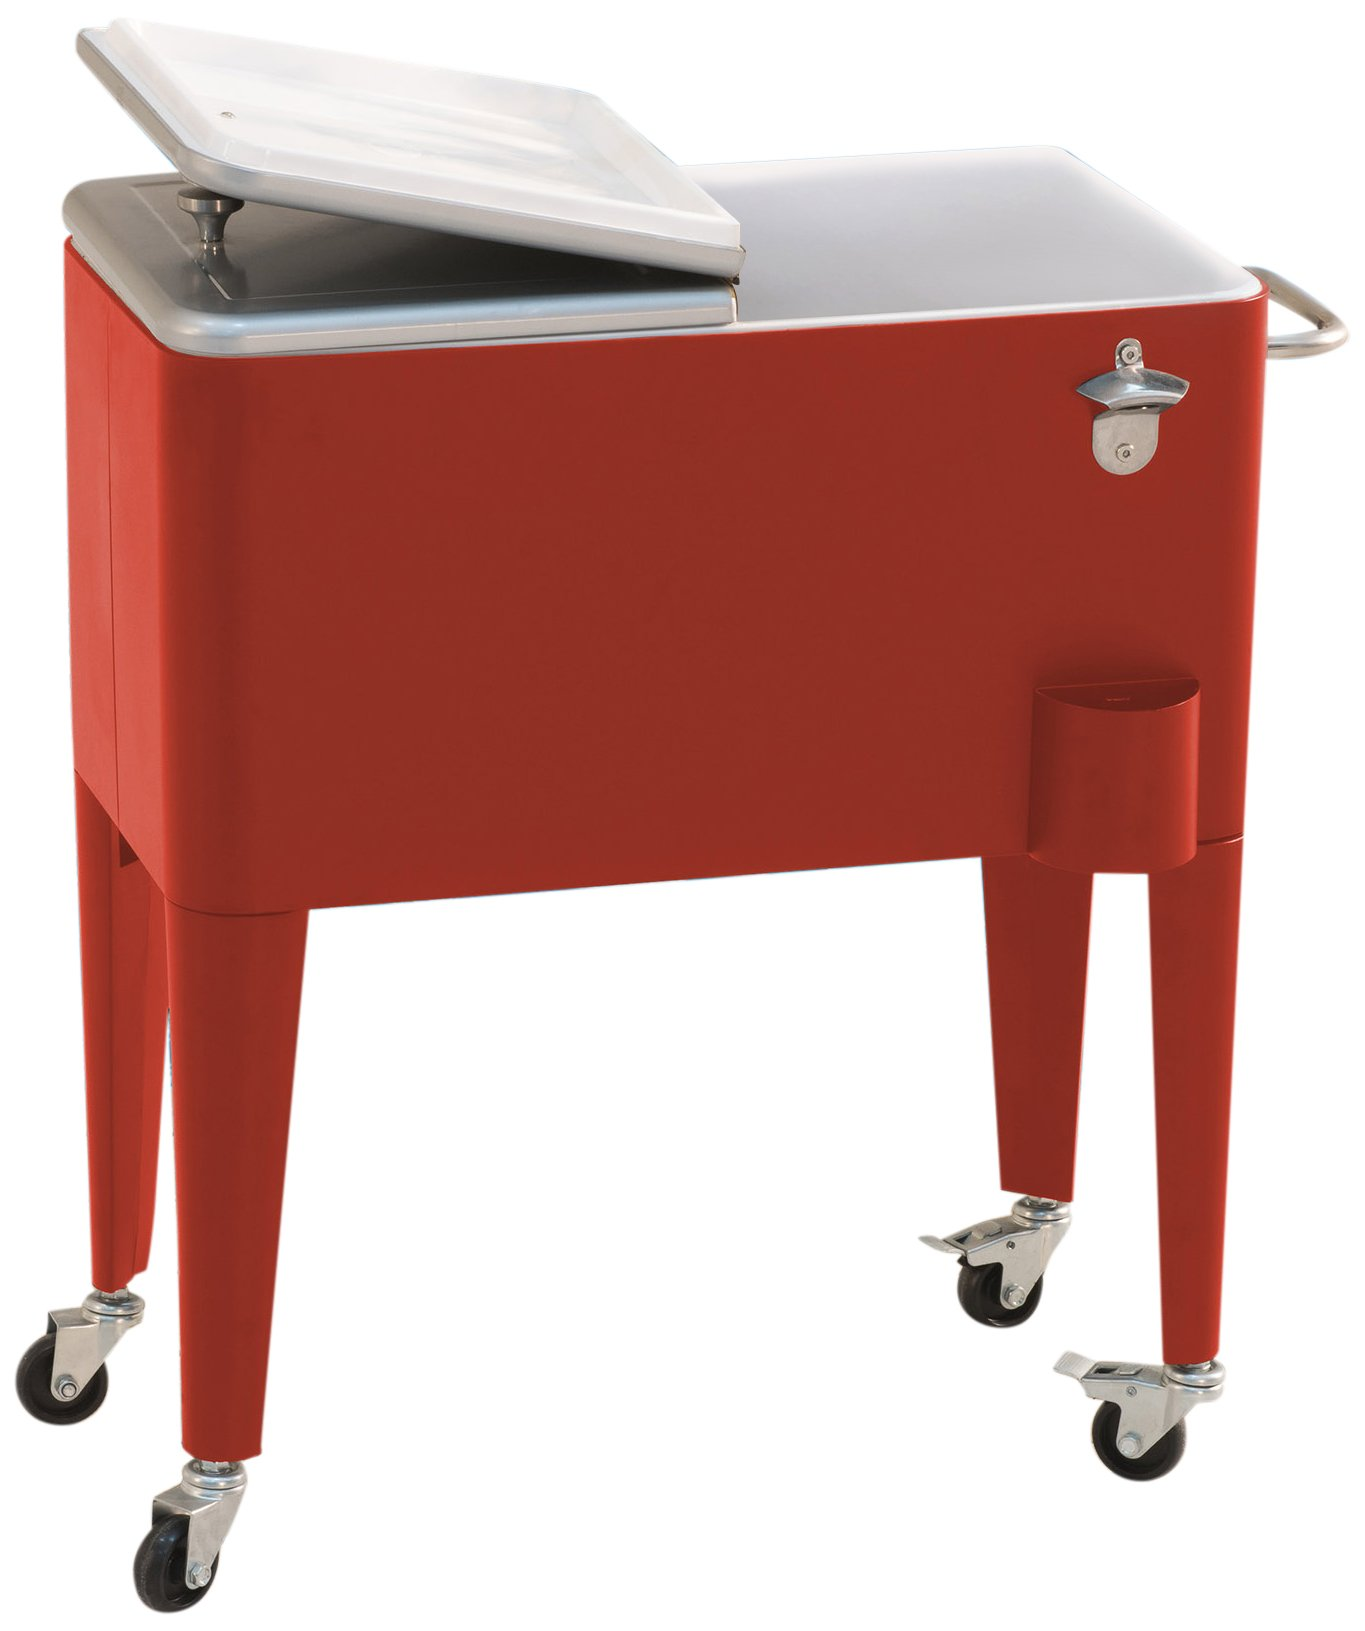 Sunjoy 60 quart Red Steel Beverage Cooler